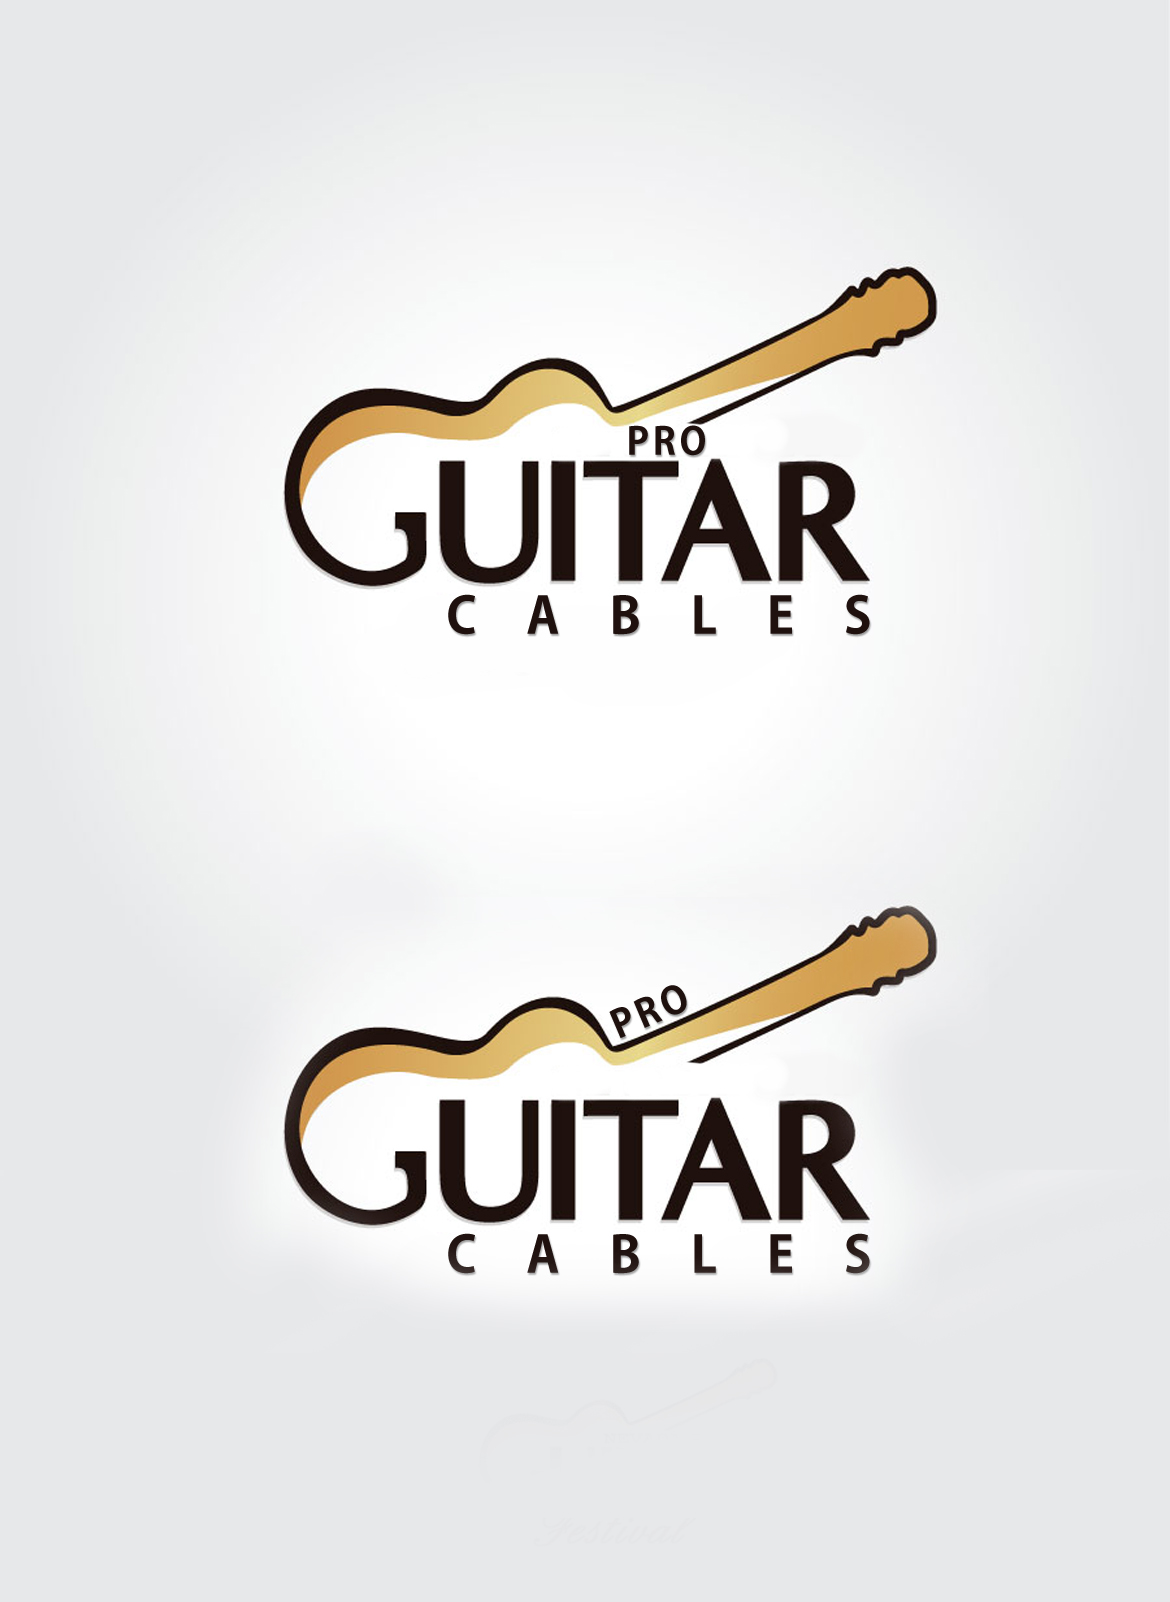 Logo Design by Shimmer Shine - Entry No. 15 in the Logo Design Contest Pro Guitar Cables Logo Design.